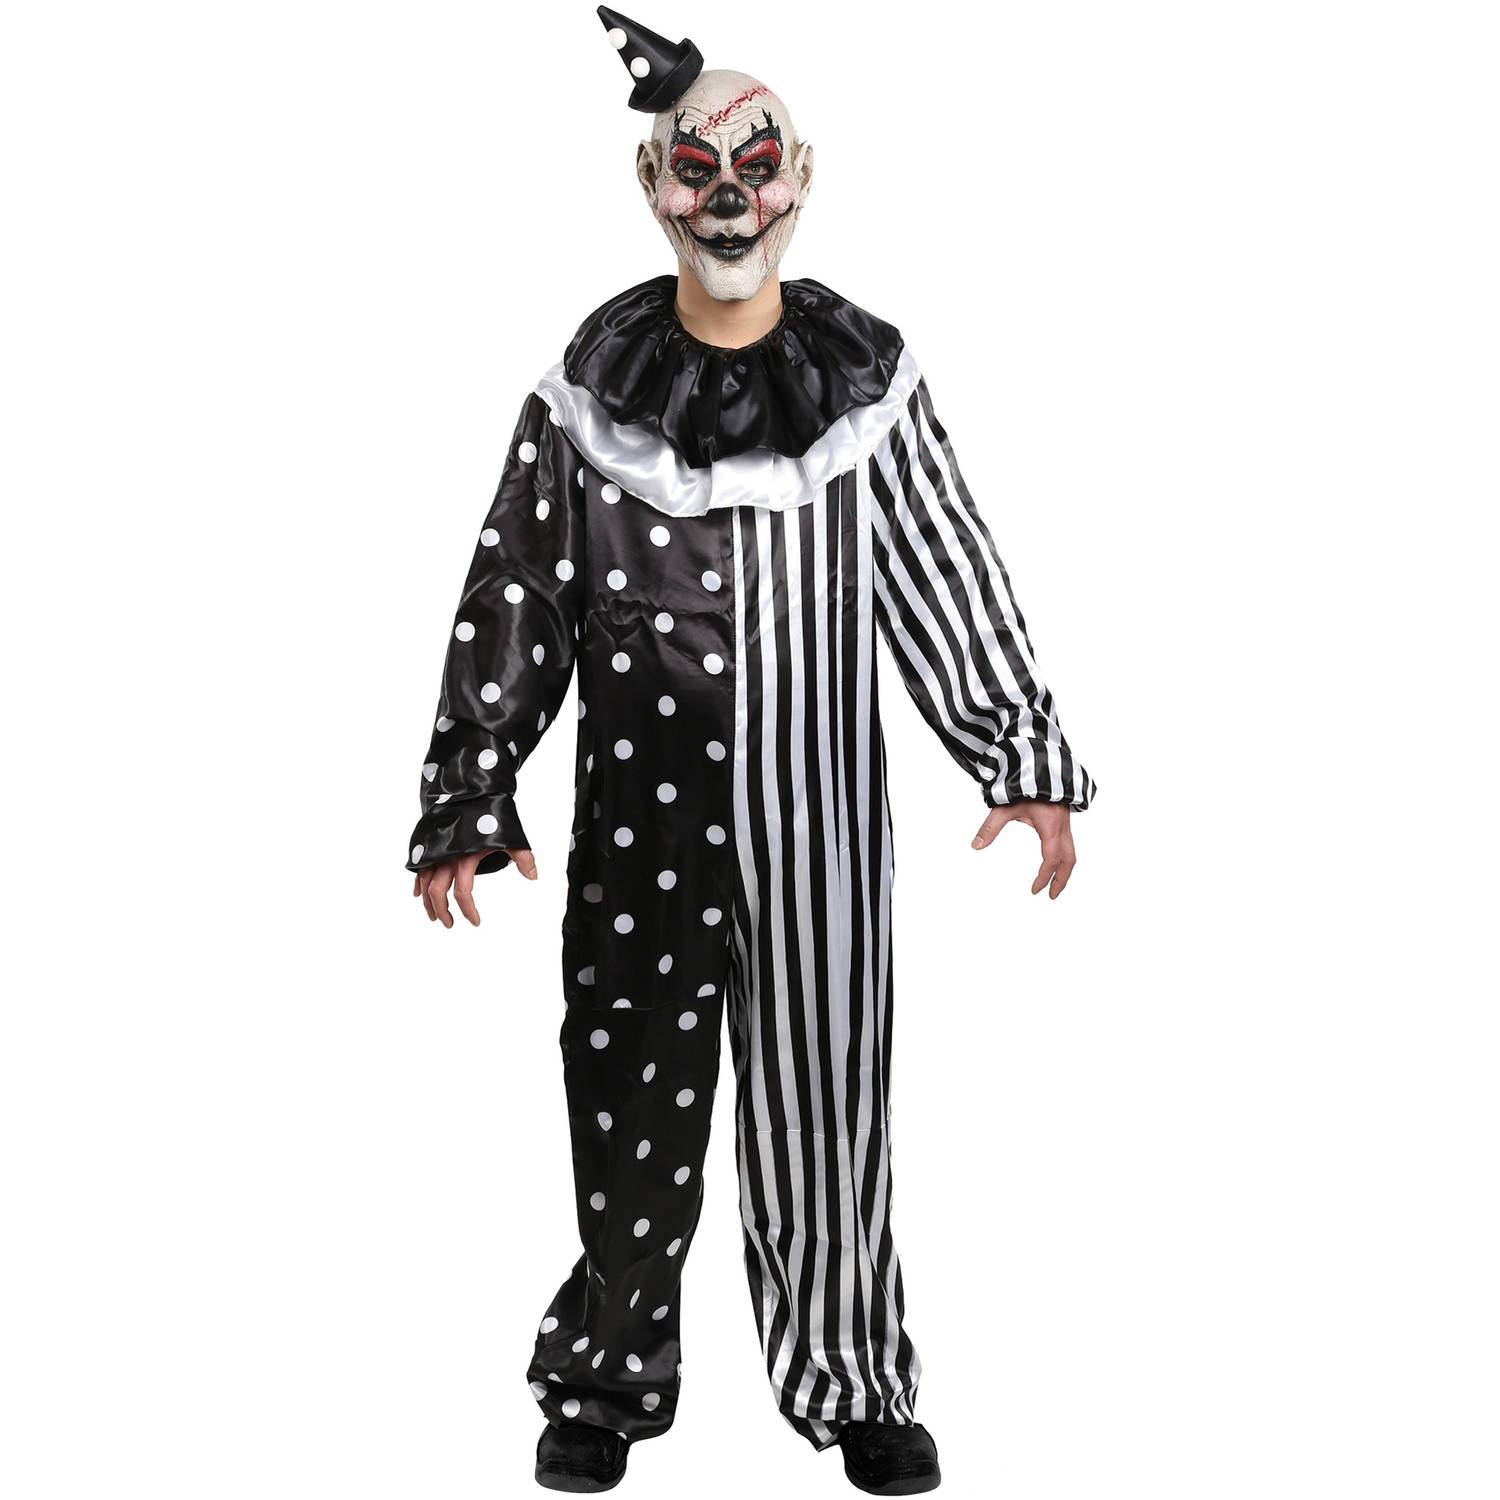 Kill Joy Clown Costume Adult Halloween Costume